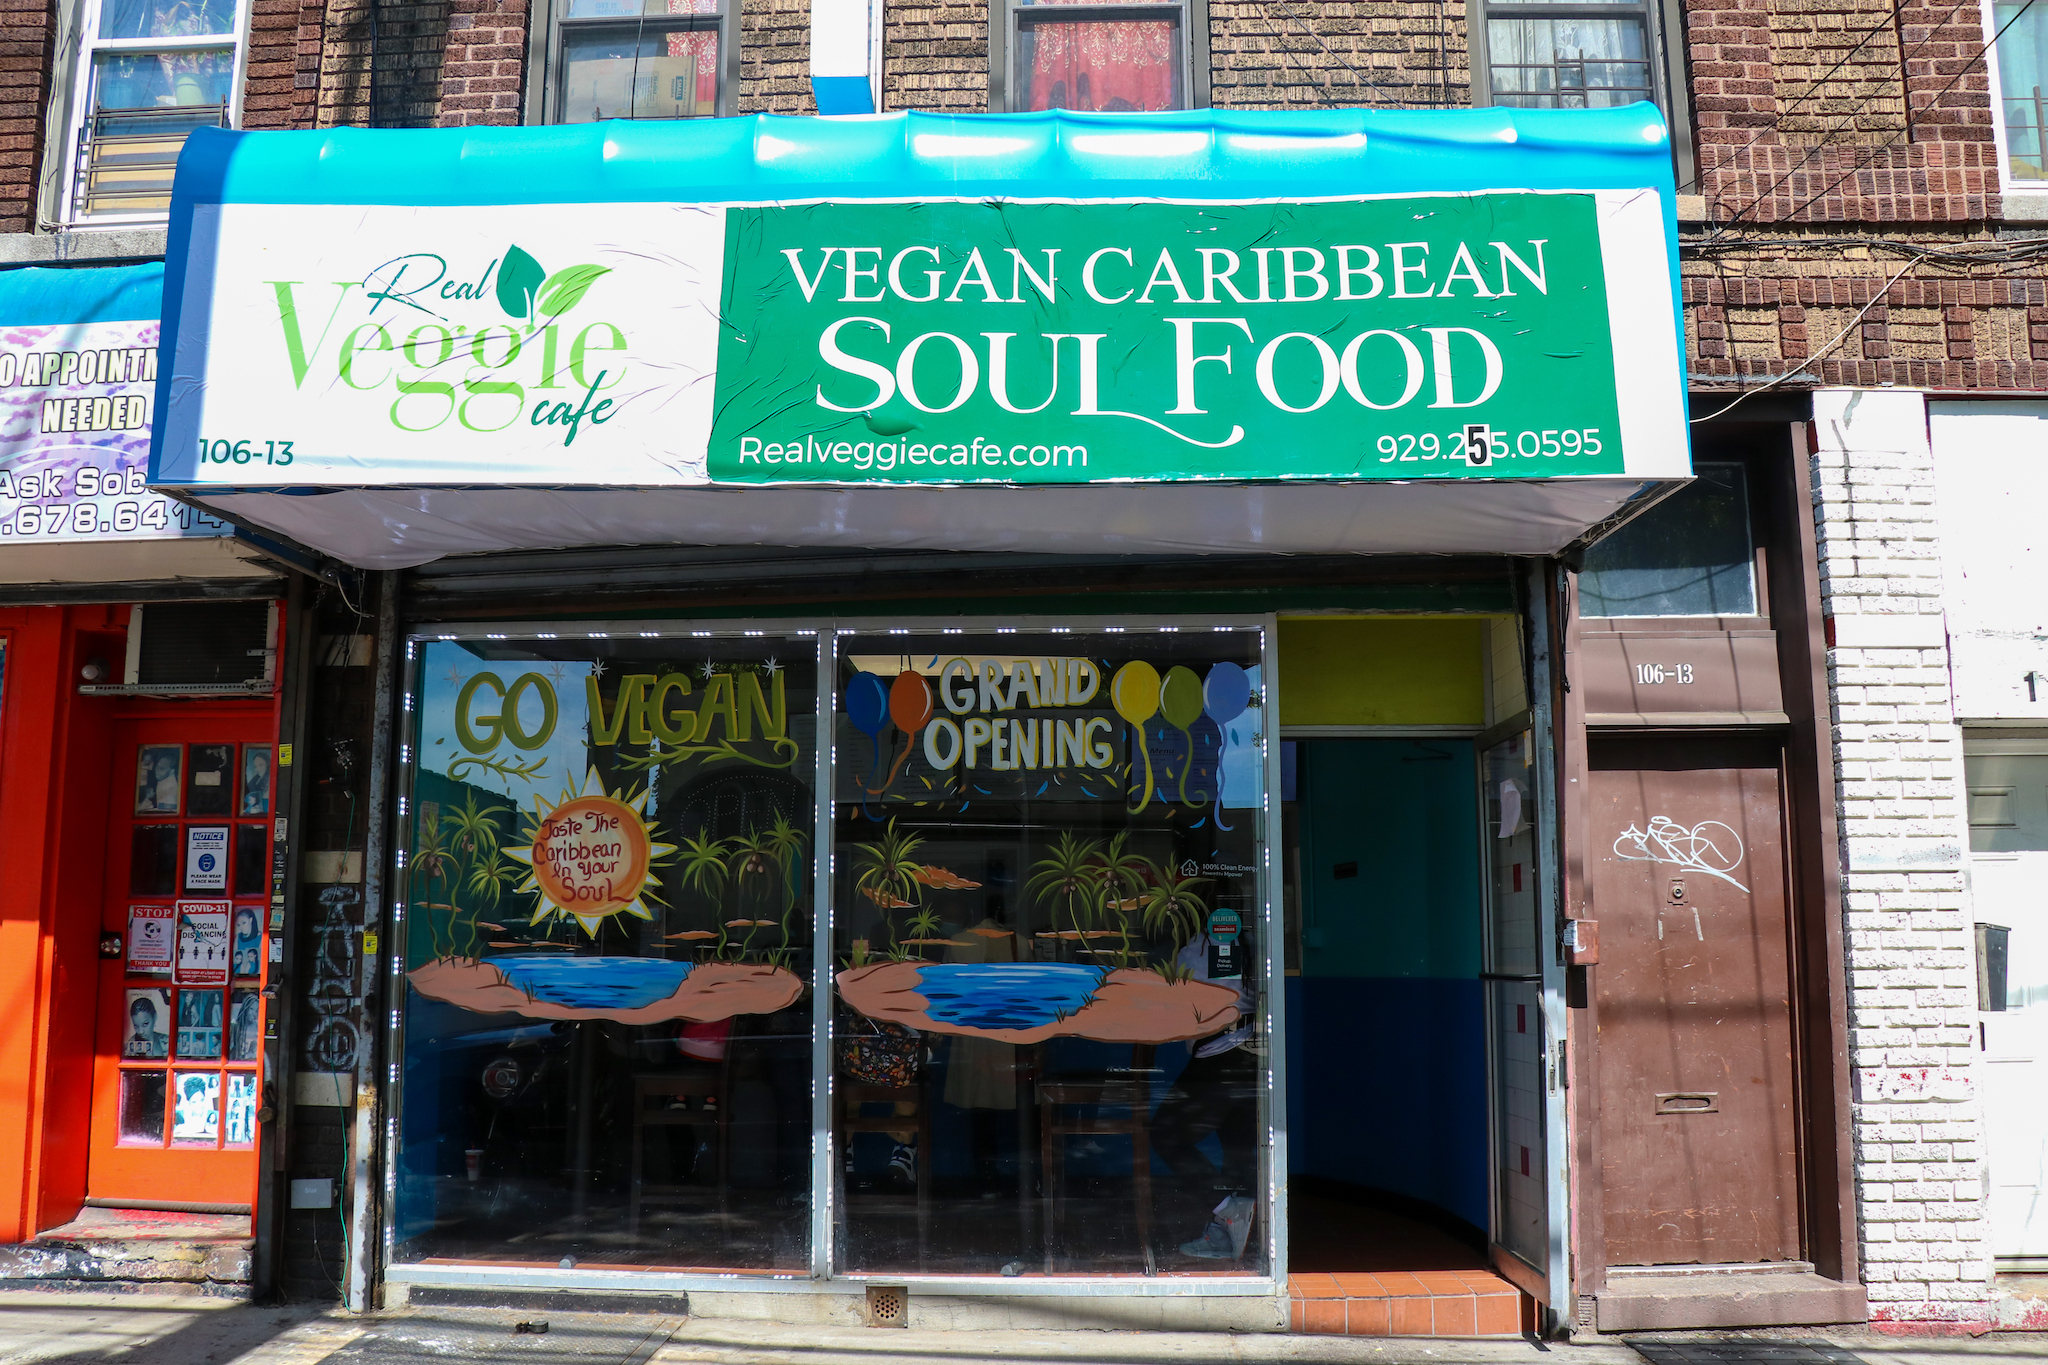 A green awning advertises vegan Caribbean soul food at the newly opened Real Veggie Cafe.